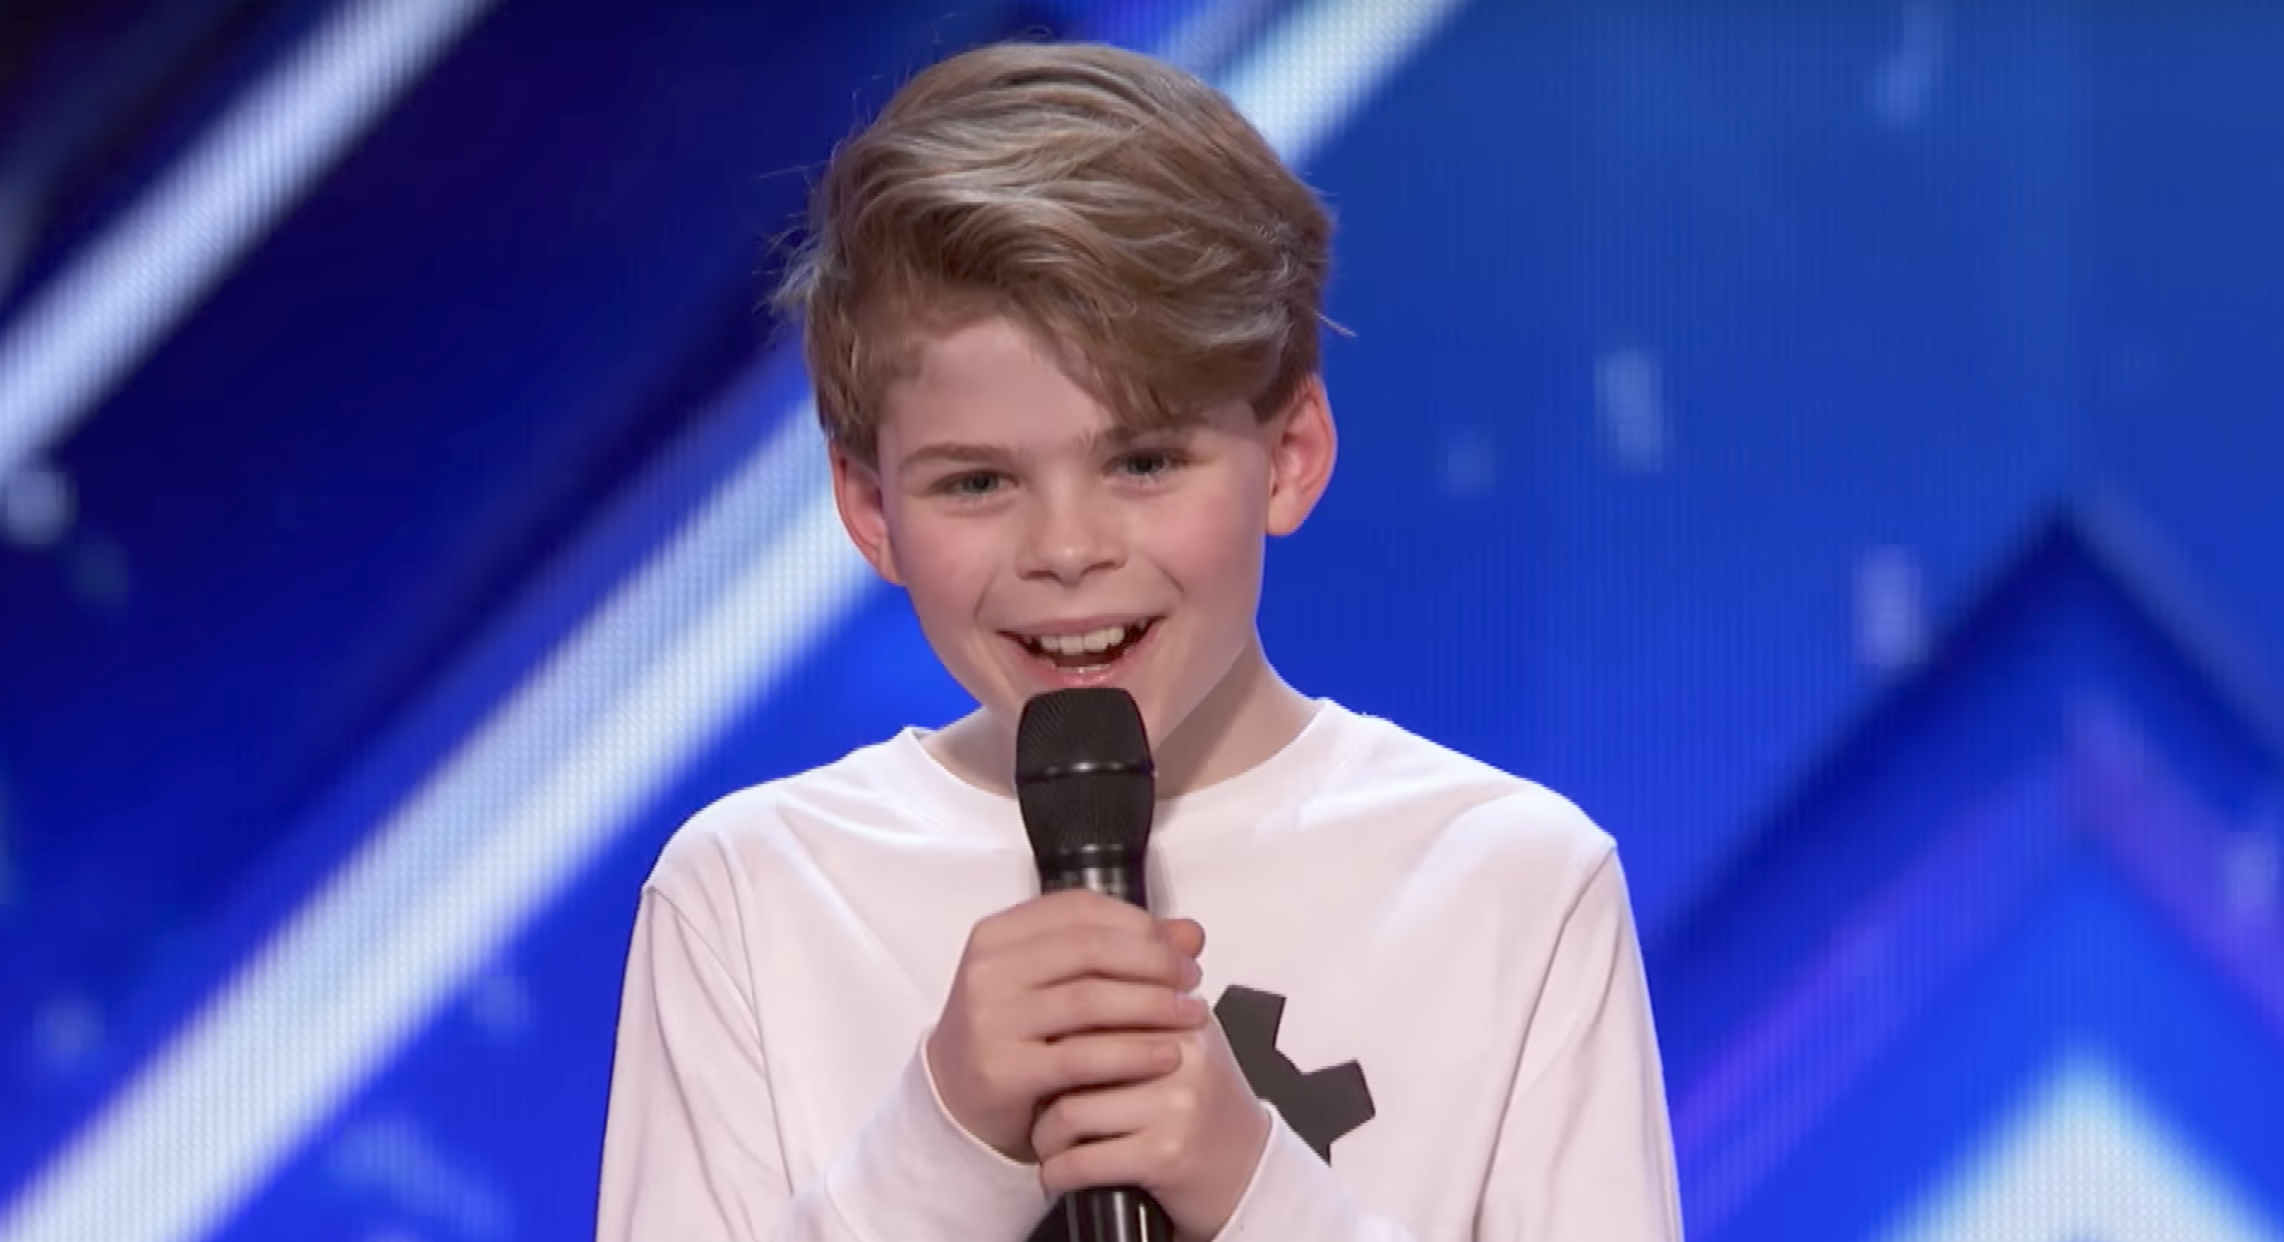 Story Dancer: America's Got Talent Merrick Hanna